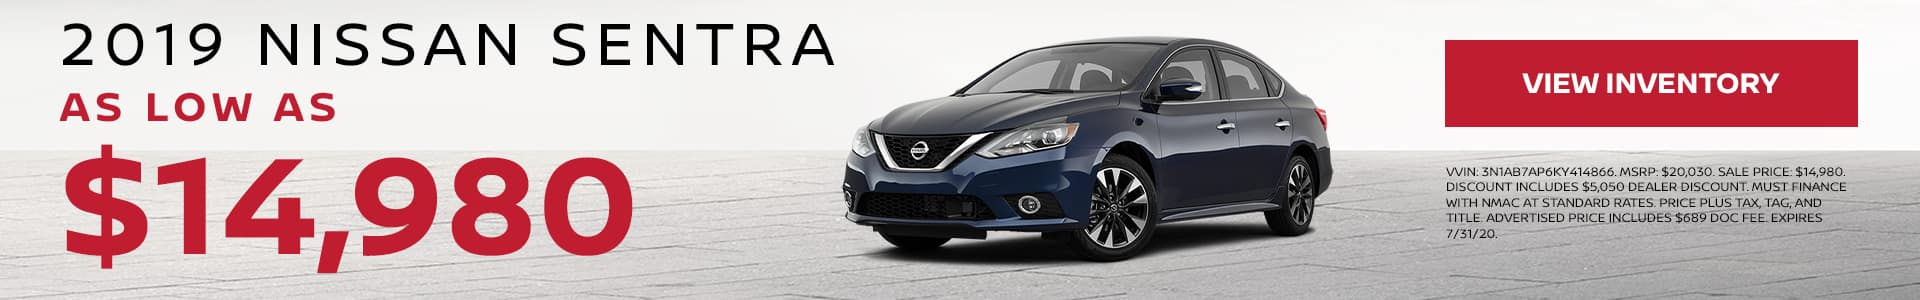 2019 Nissan Sentra As Low As $14,980